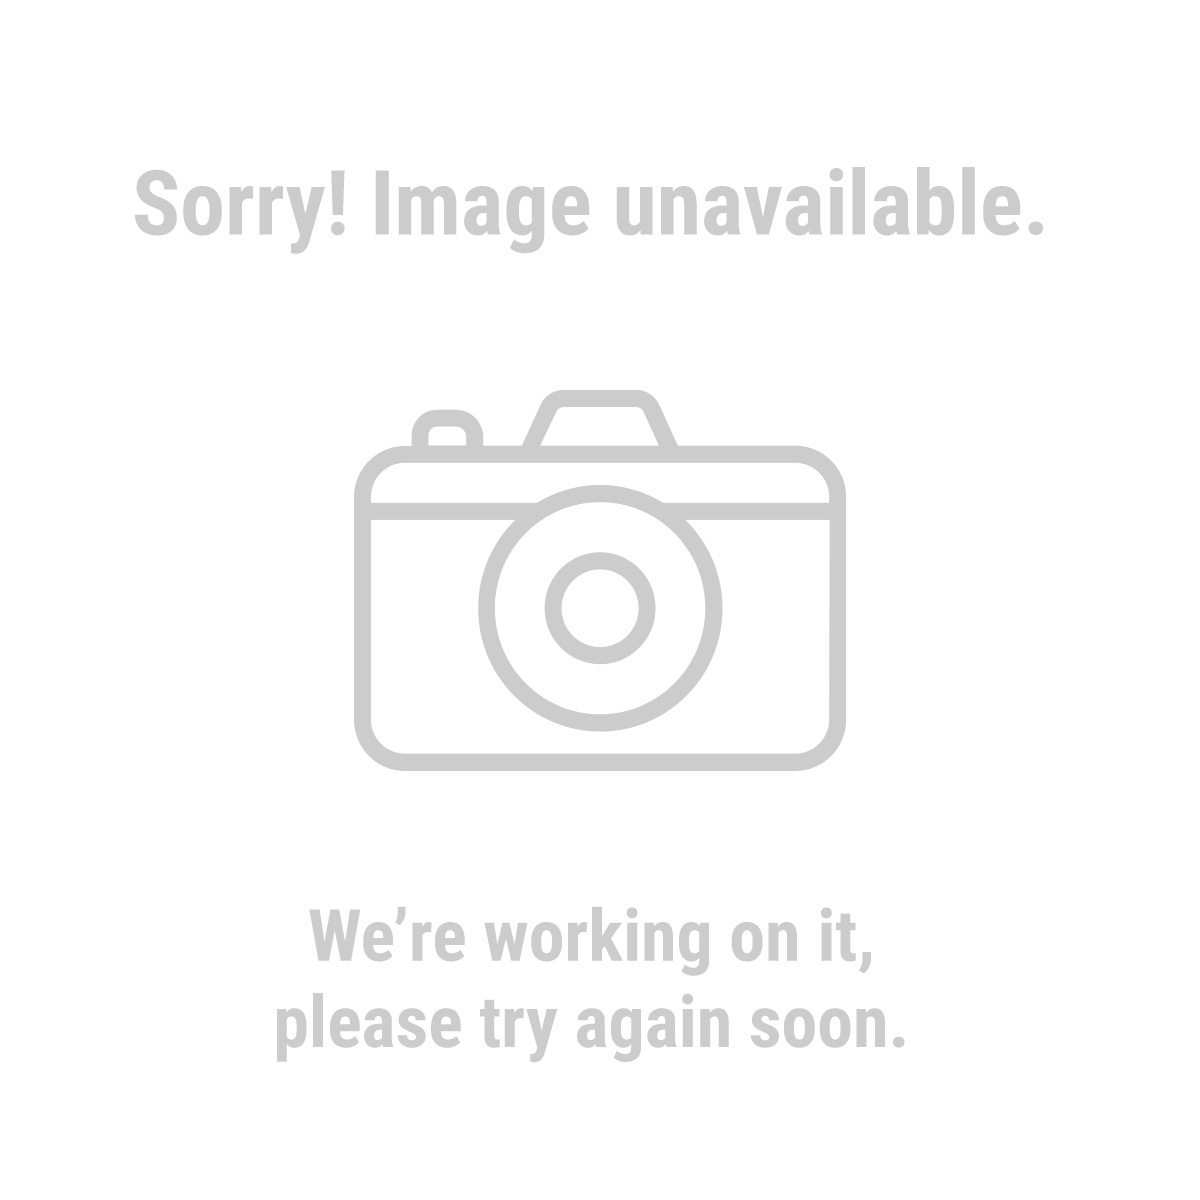 Haul-Master 93888 Mover's Dolly